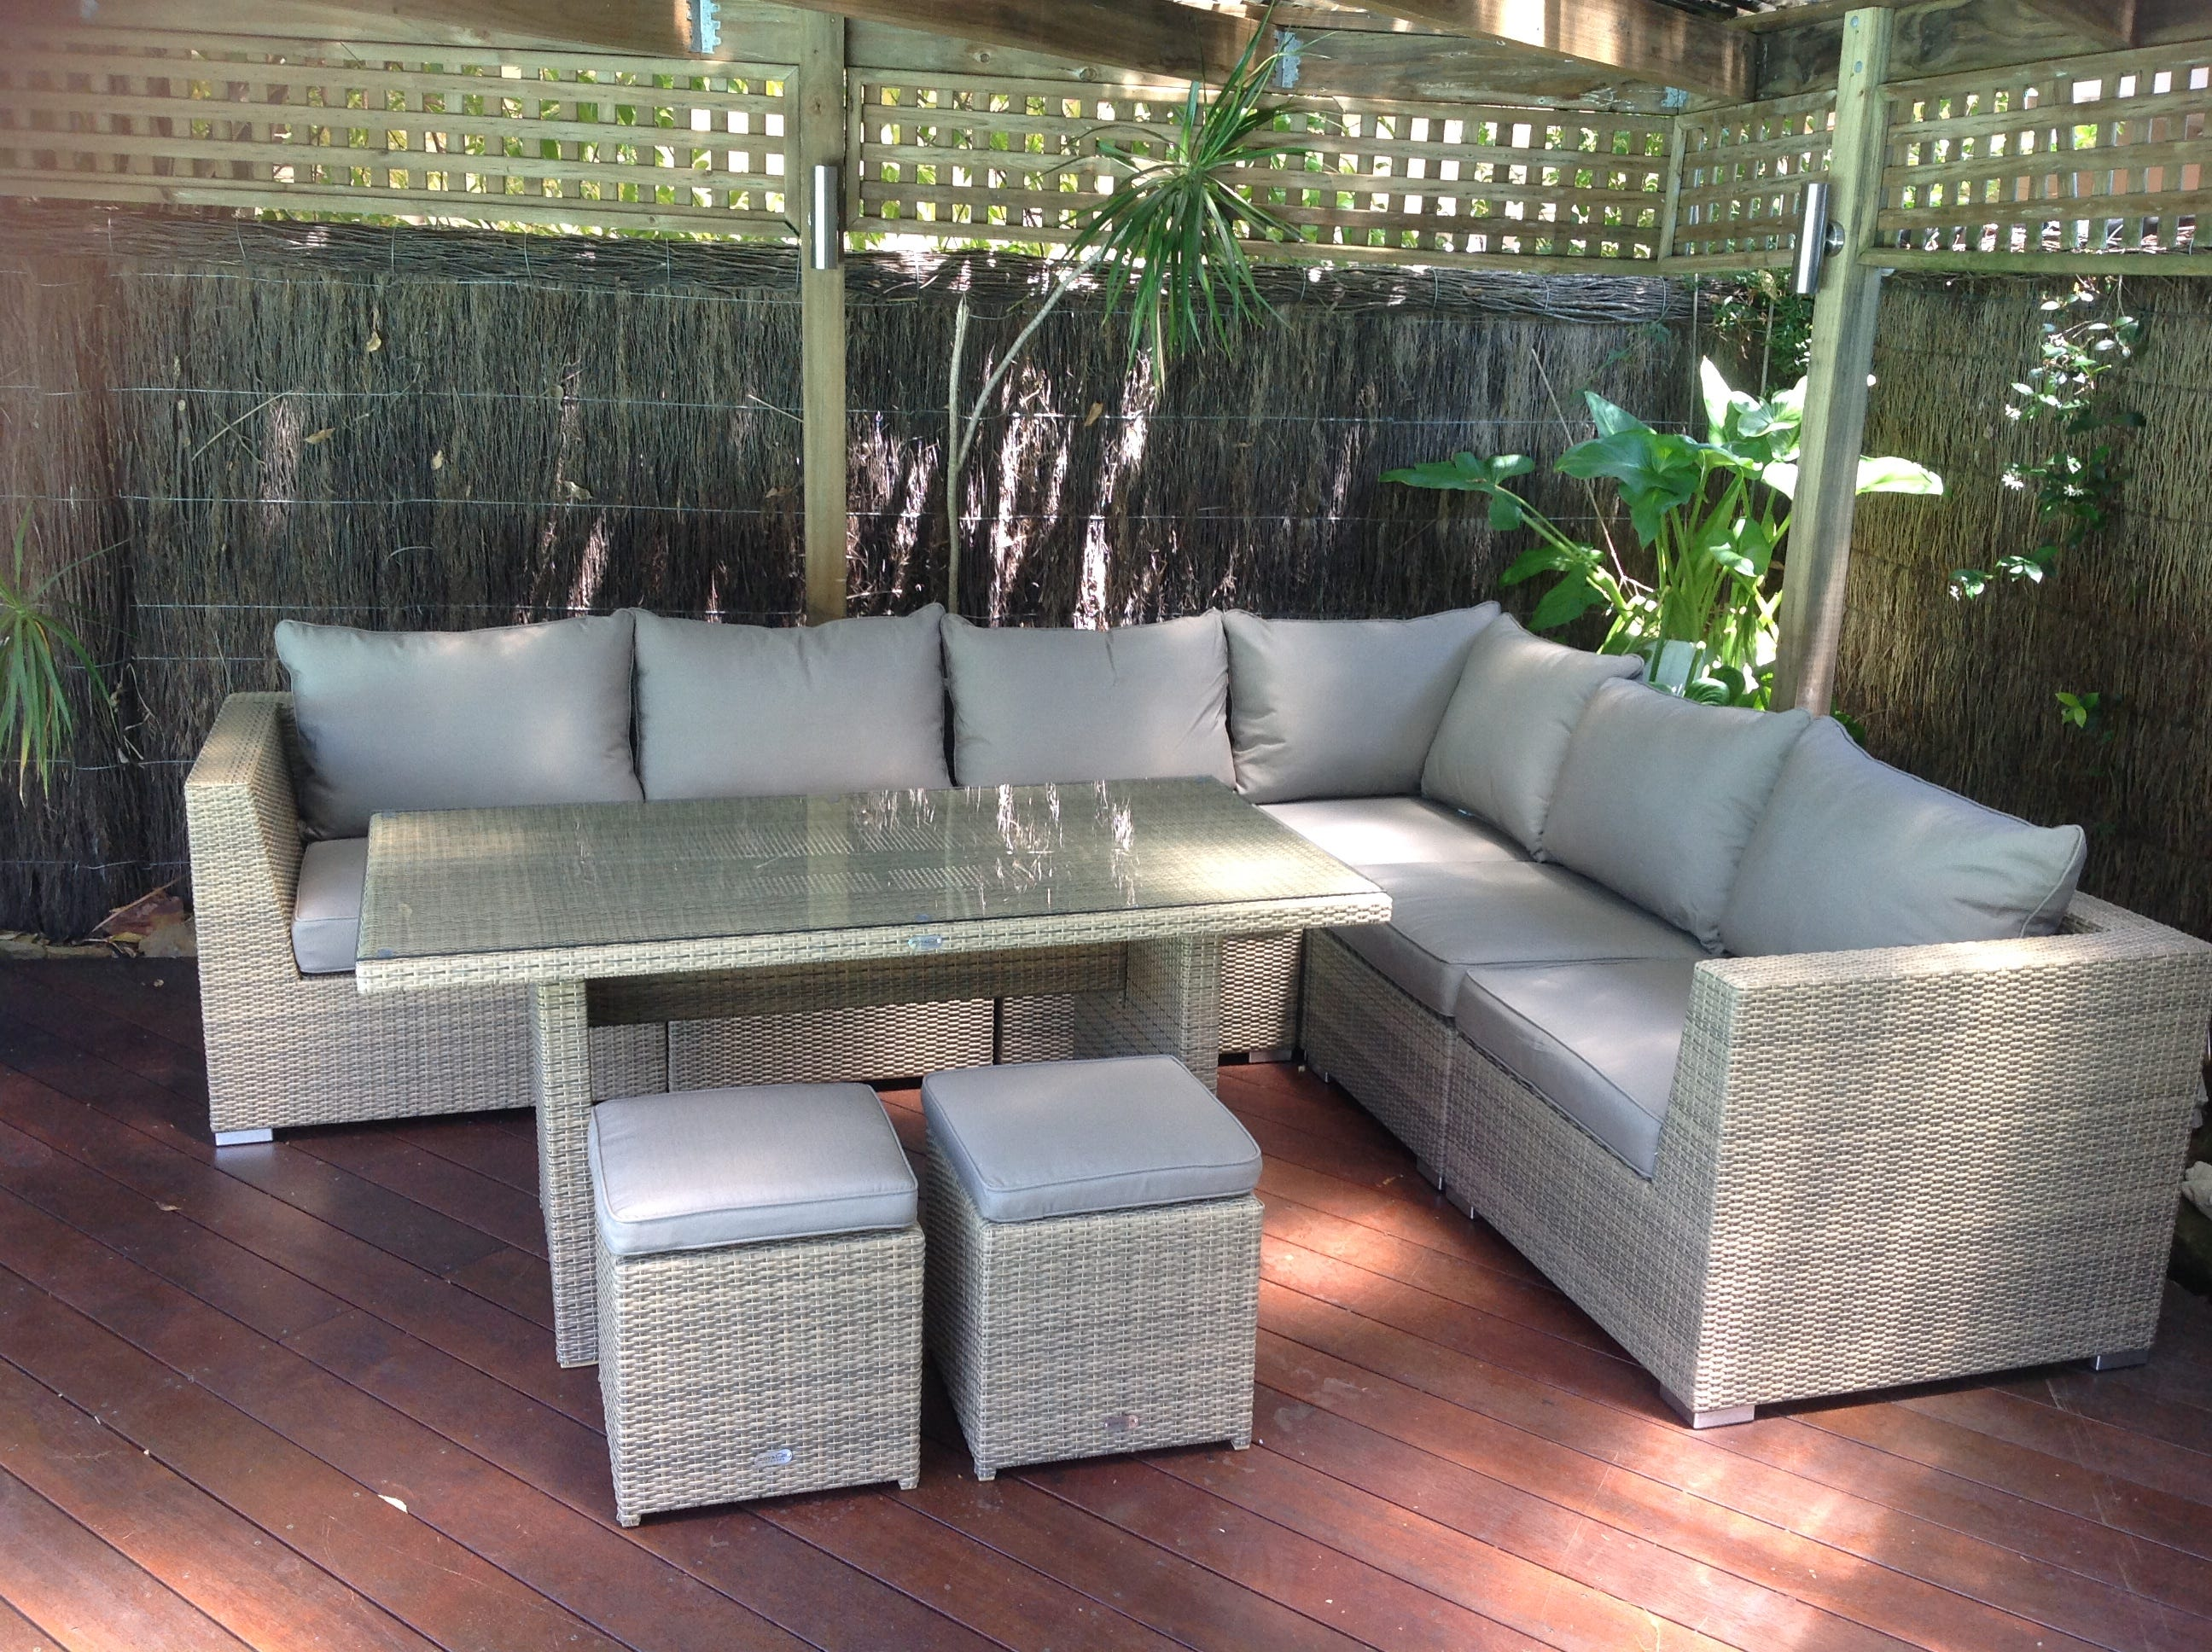 Outdoor furniture evolution dining out in comfort for Outdoor porch furniture